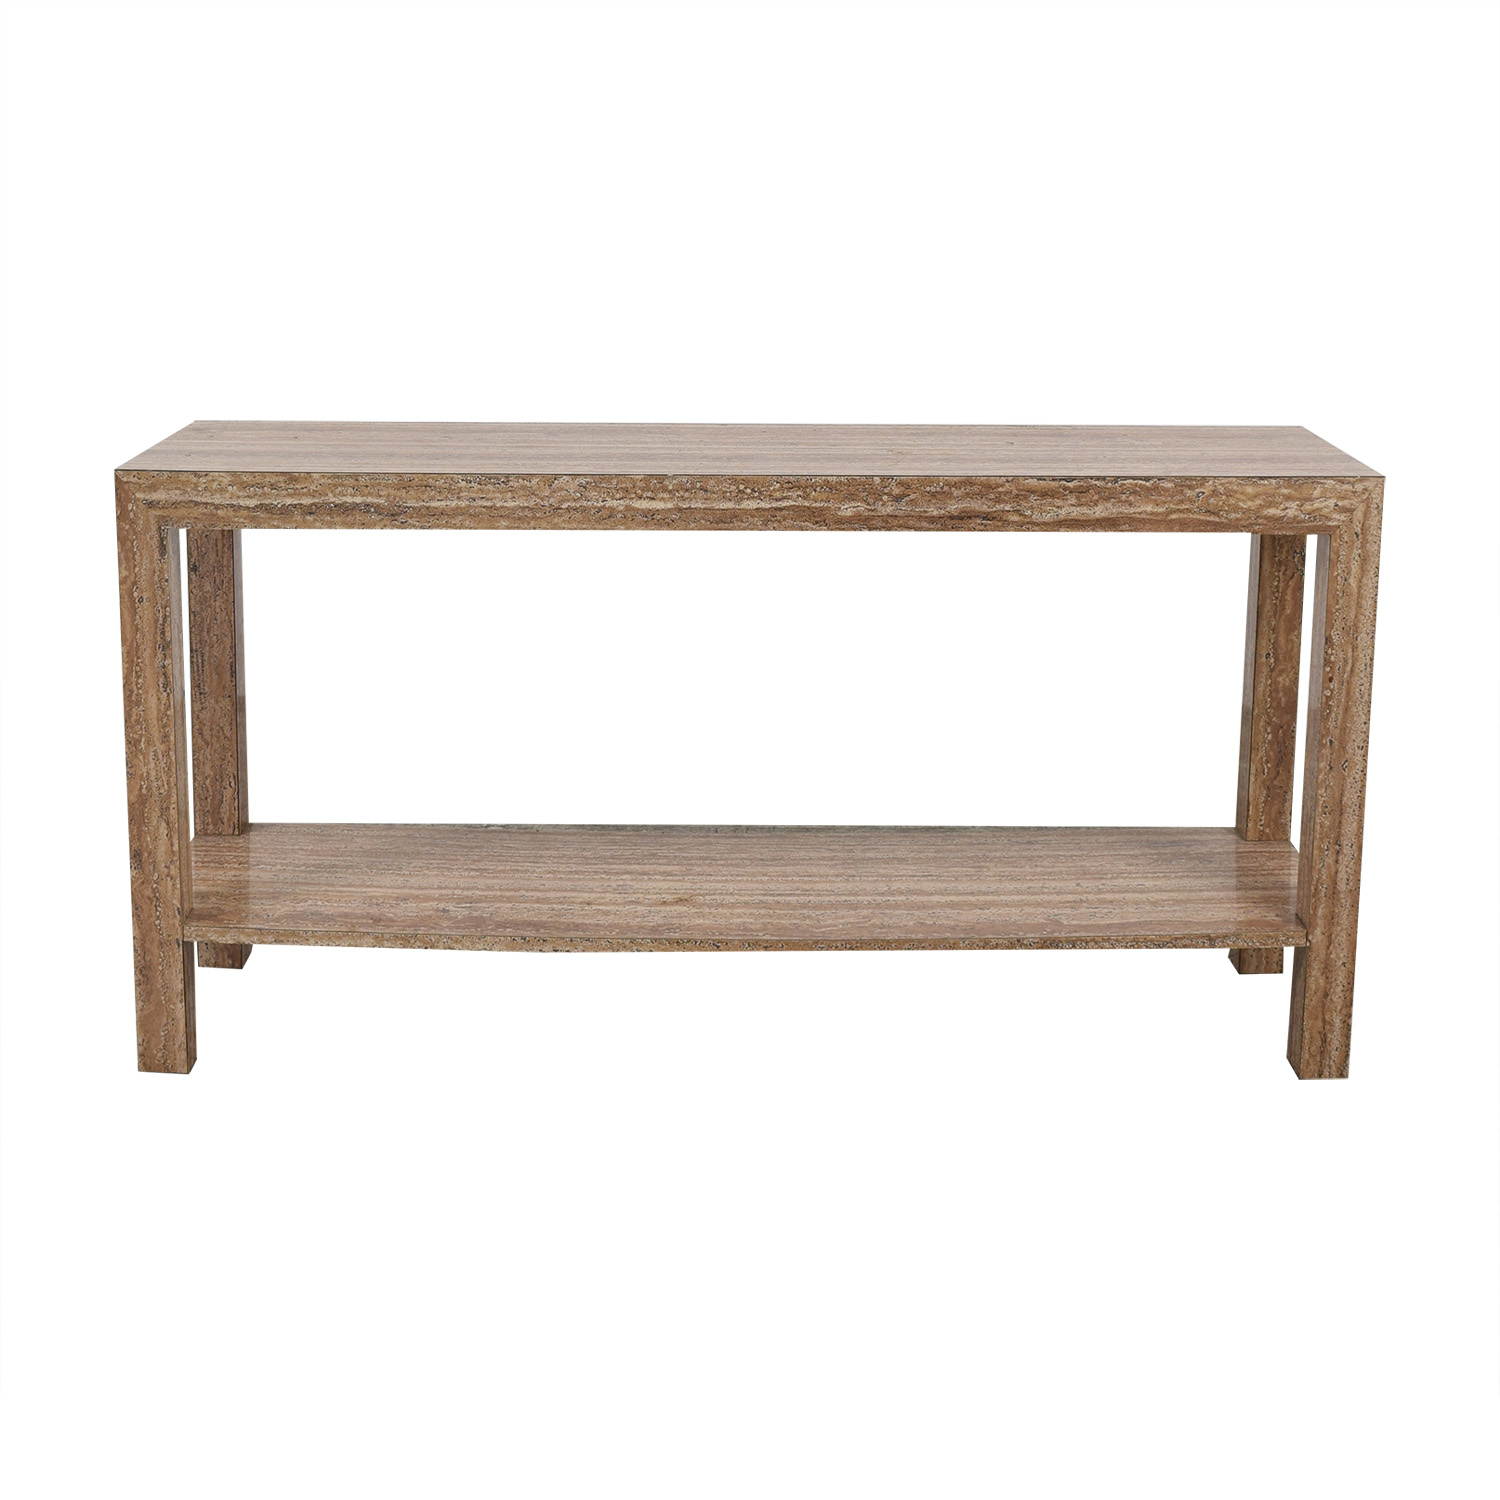 Parsons Console Table ma